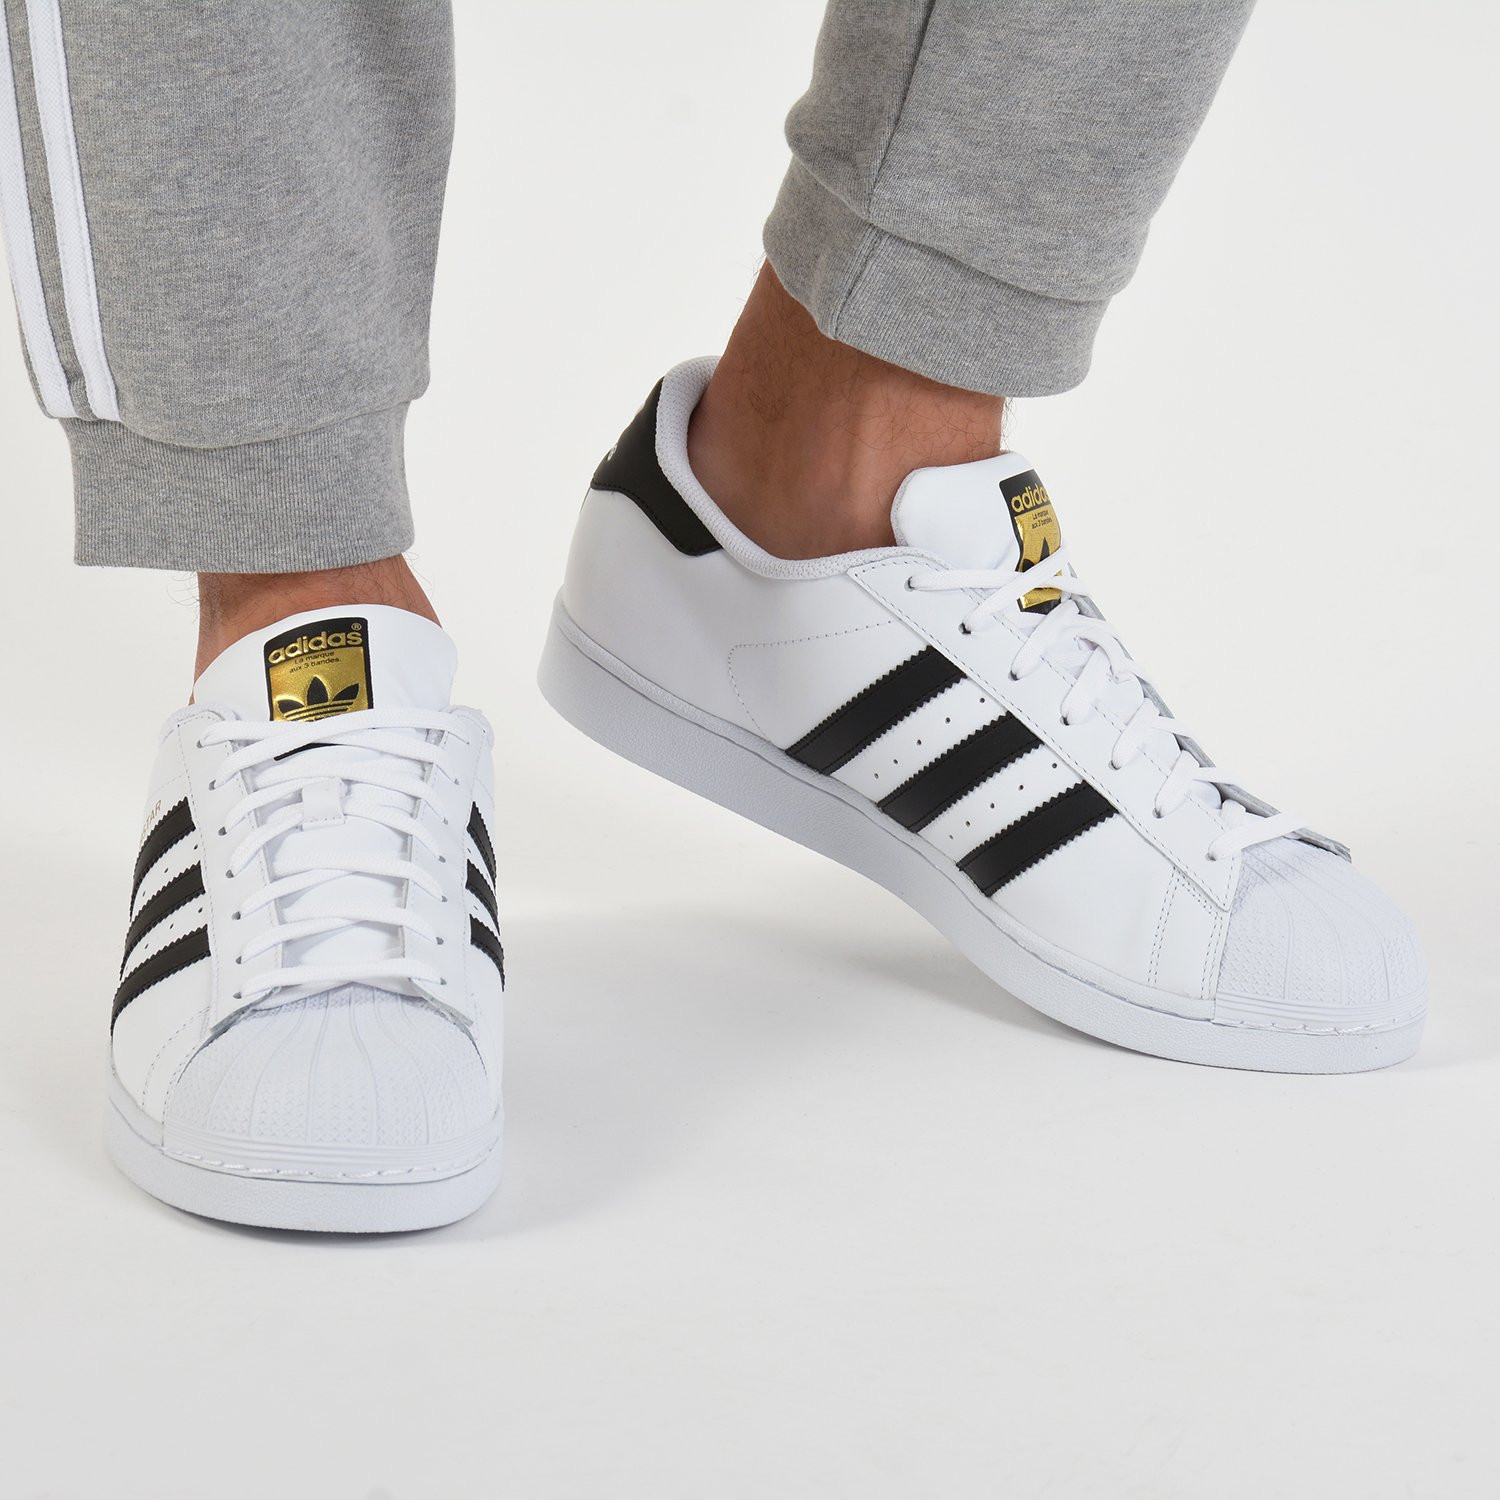 cost charm release date: many styles adidas Originals Superstar - Men's Shoes FTWWHT/CBLACK/FTWWHT C77124